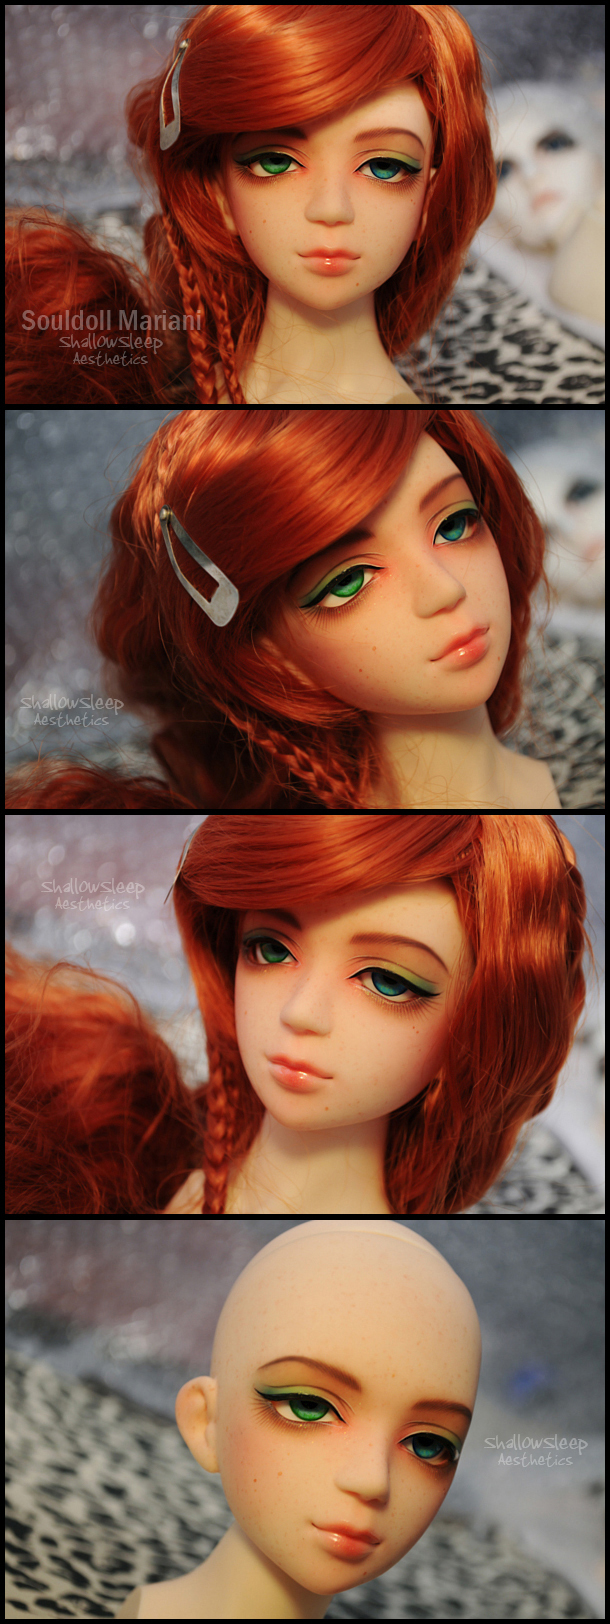 Face-up: Souldoll Mariani - 1 by asainemuri